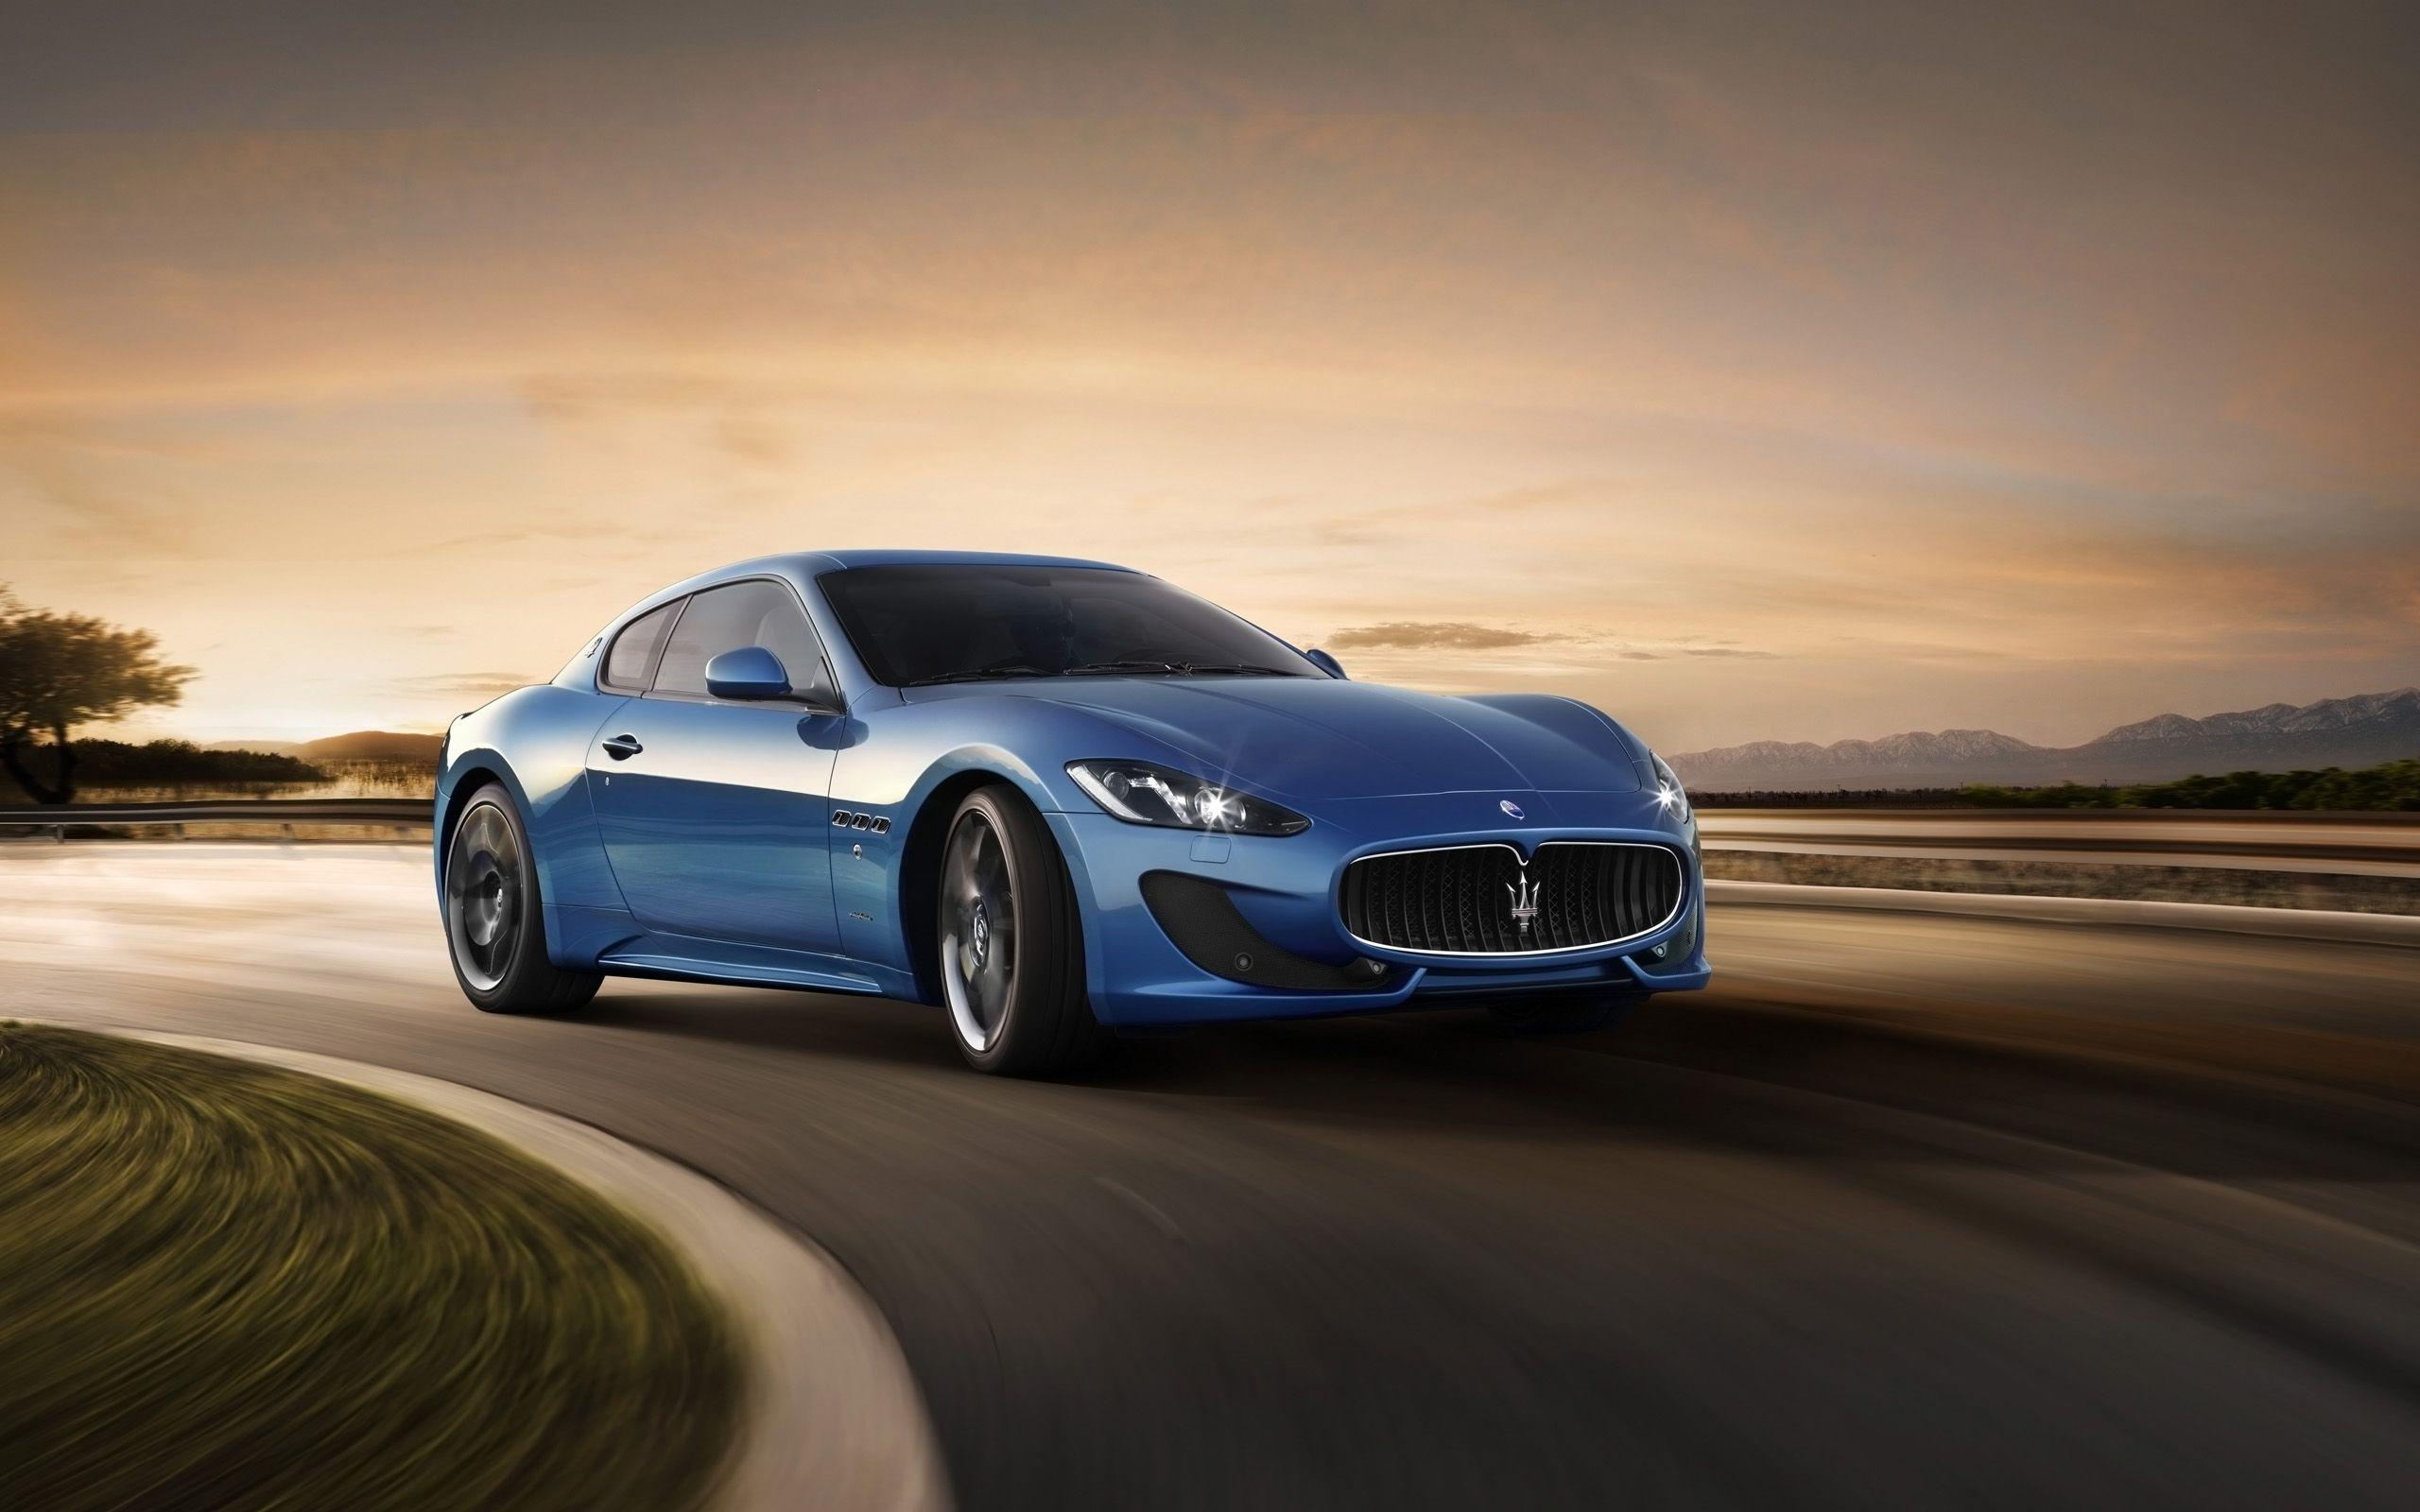 2016 Maserati Quattroporte Wallpaper | HD Car Wallpapers